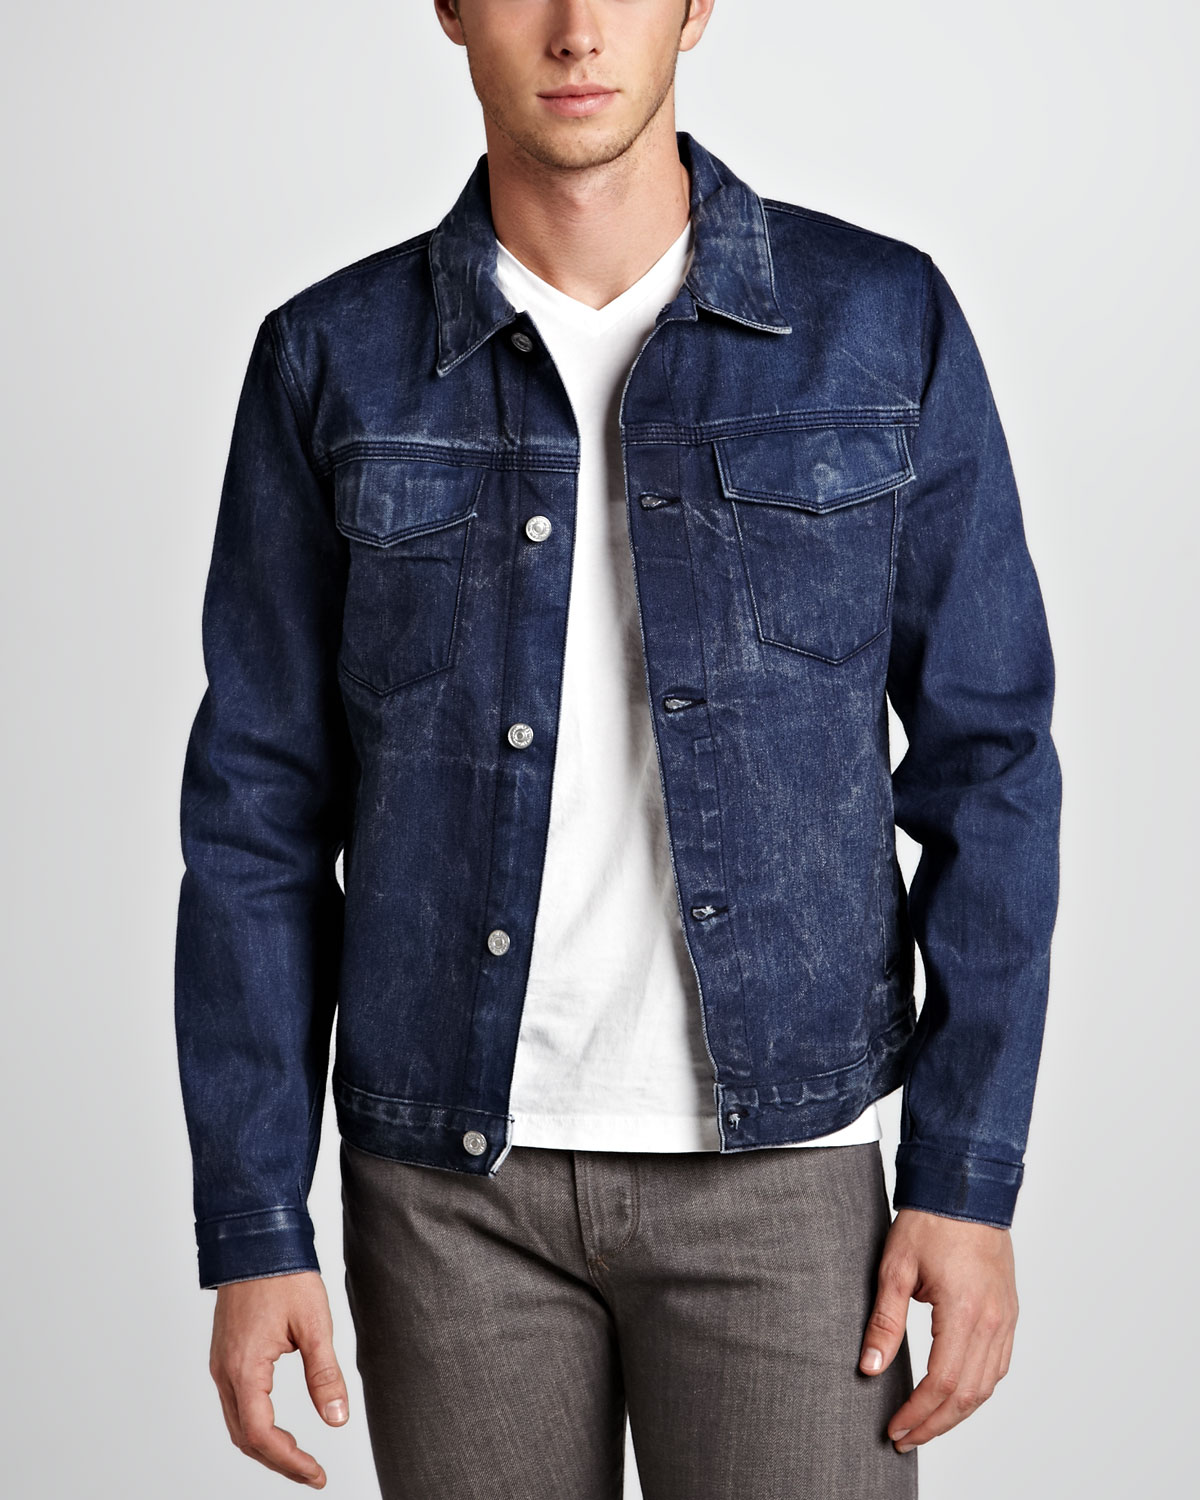 Navy Blue Denim Jacket - JacketIn